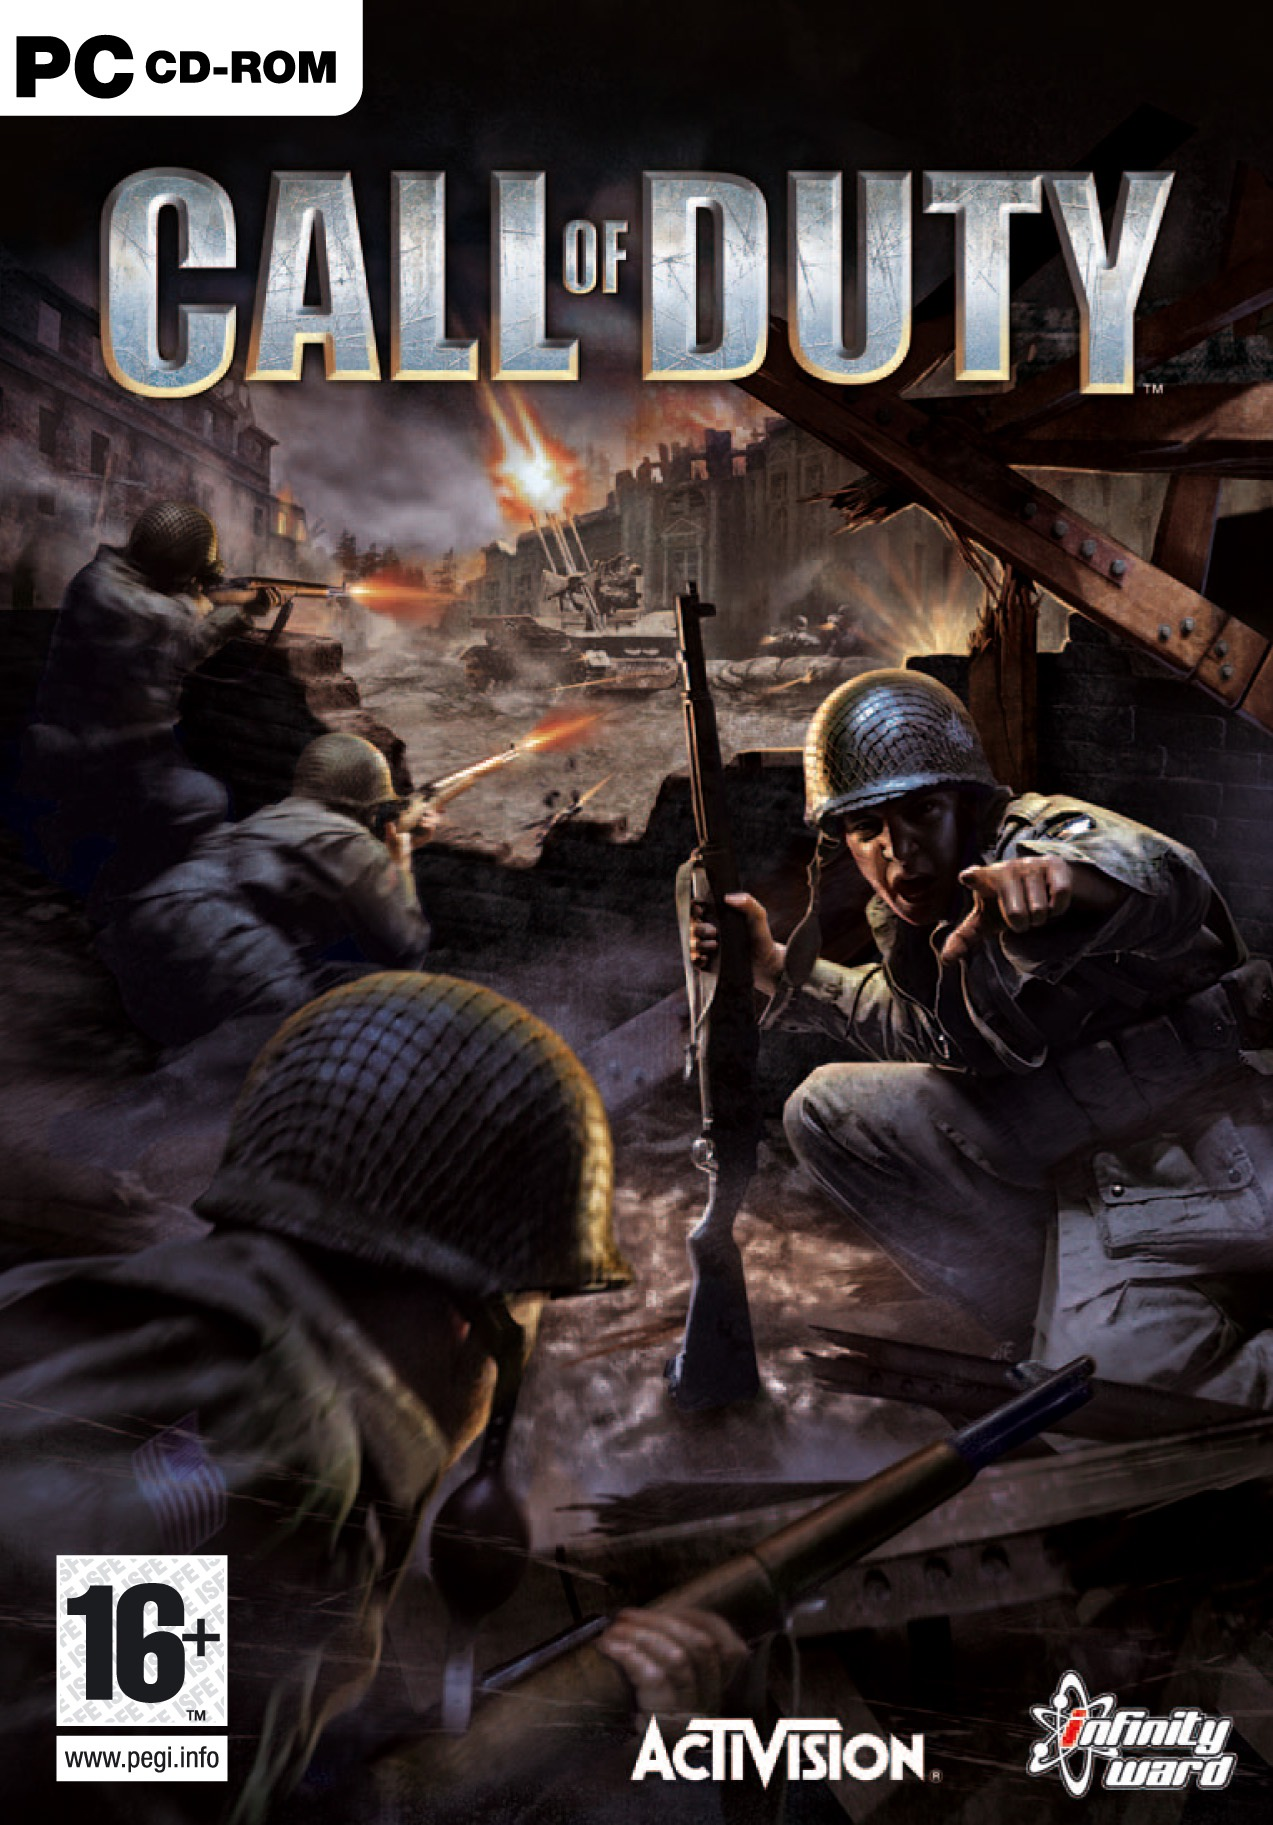 Call of duty 4 |